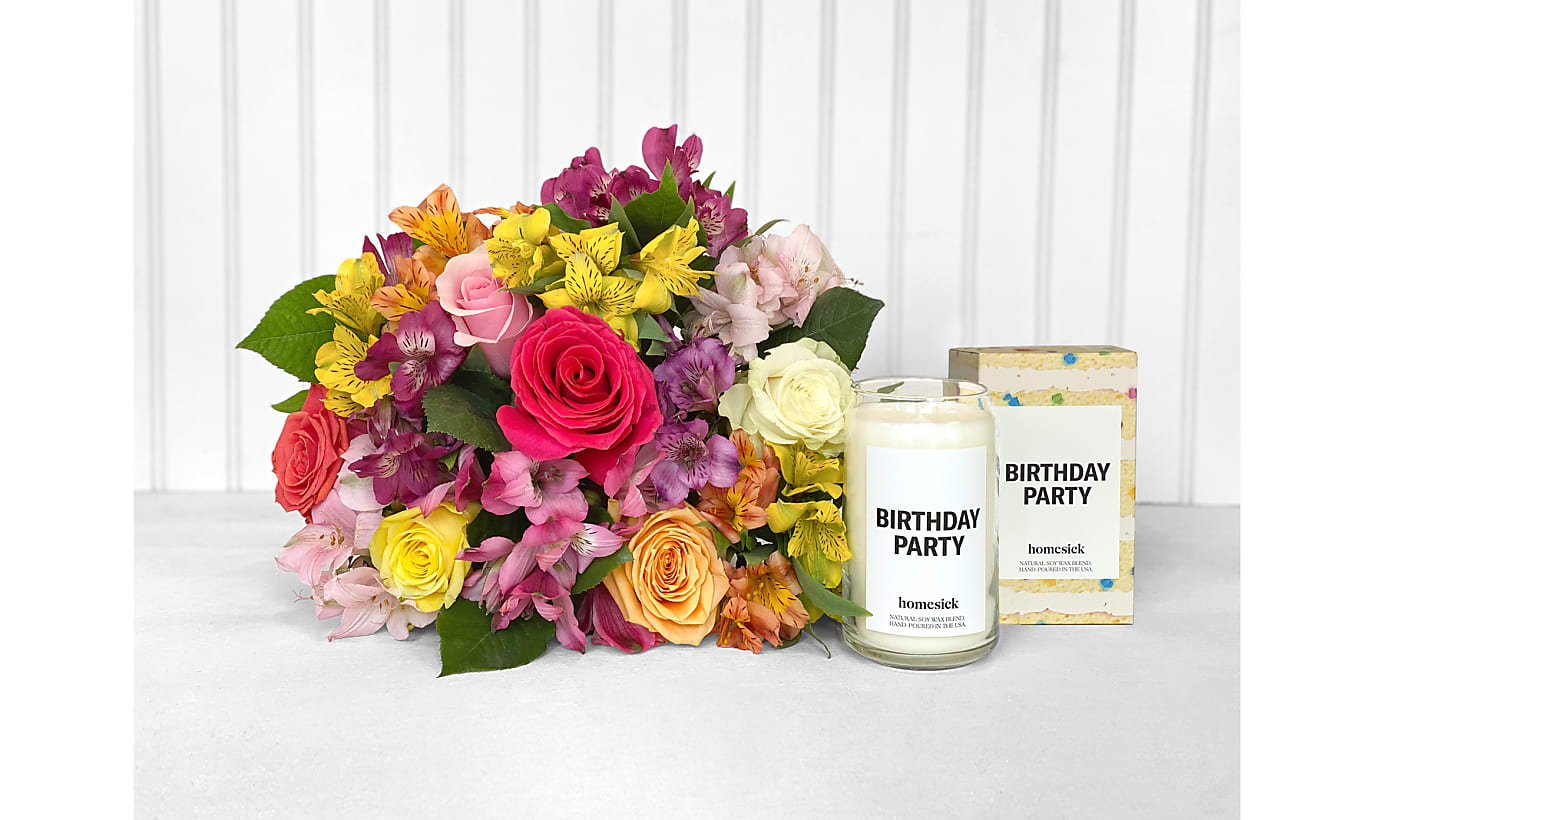 Sunshine Bouquet & Birthday Party Homesick® Candle - Image 1 Of 2